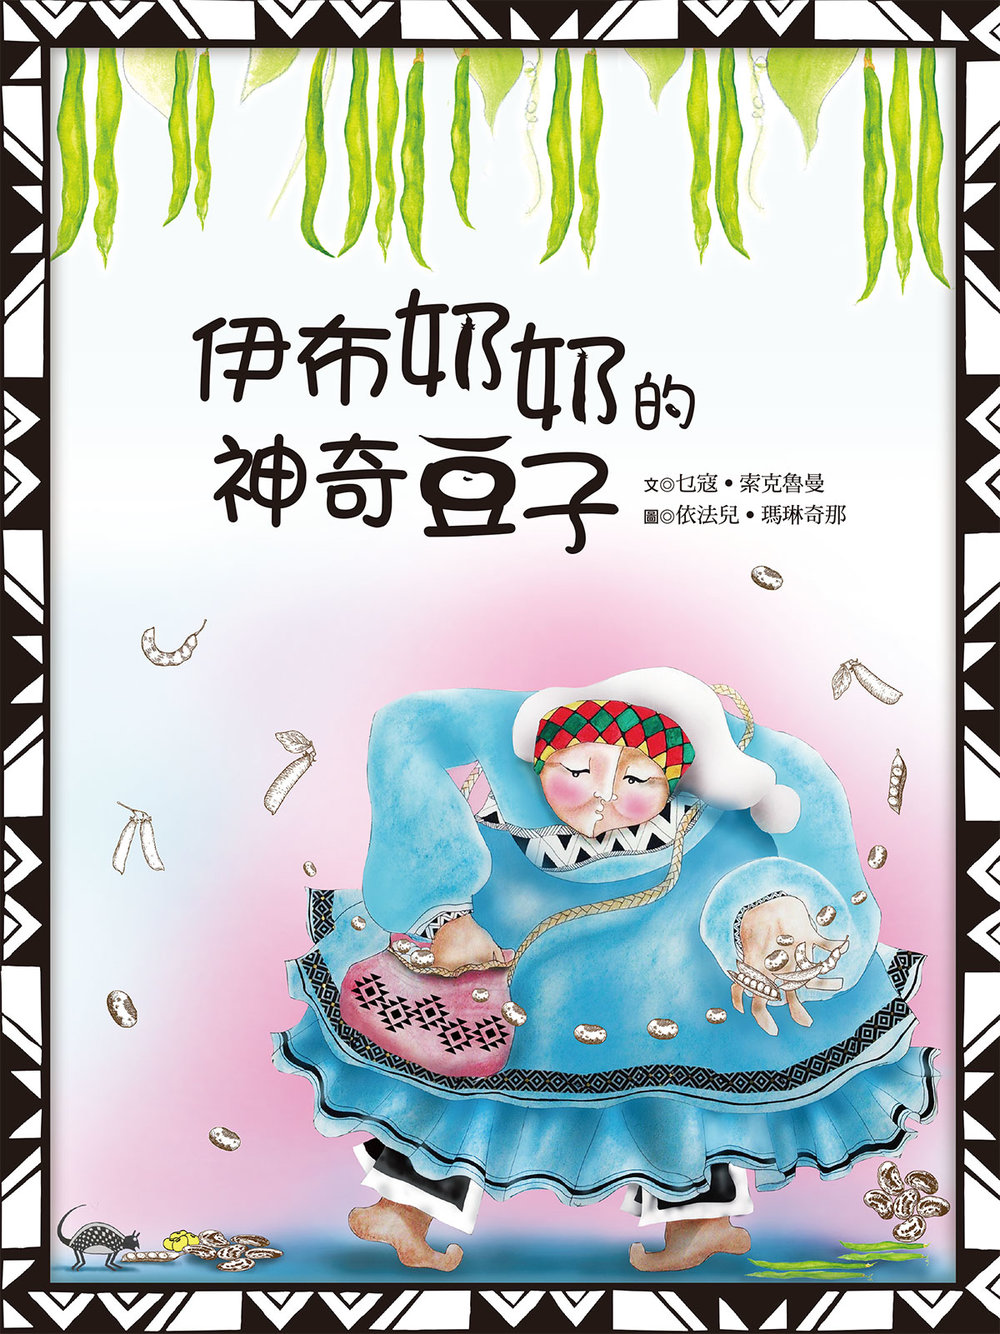 Children's Publications Co., Ltd.|青林國際出版(股)公司   36pages|21 x 38cm|978-986-274-313-3   CONTACT INFO:   Susan Yang Managing Editor|susan@012book.com.tw  Tel:+886-2-87972777 ext.511